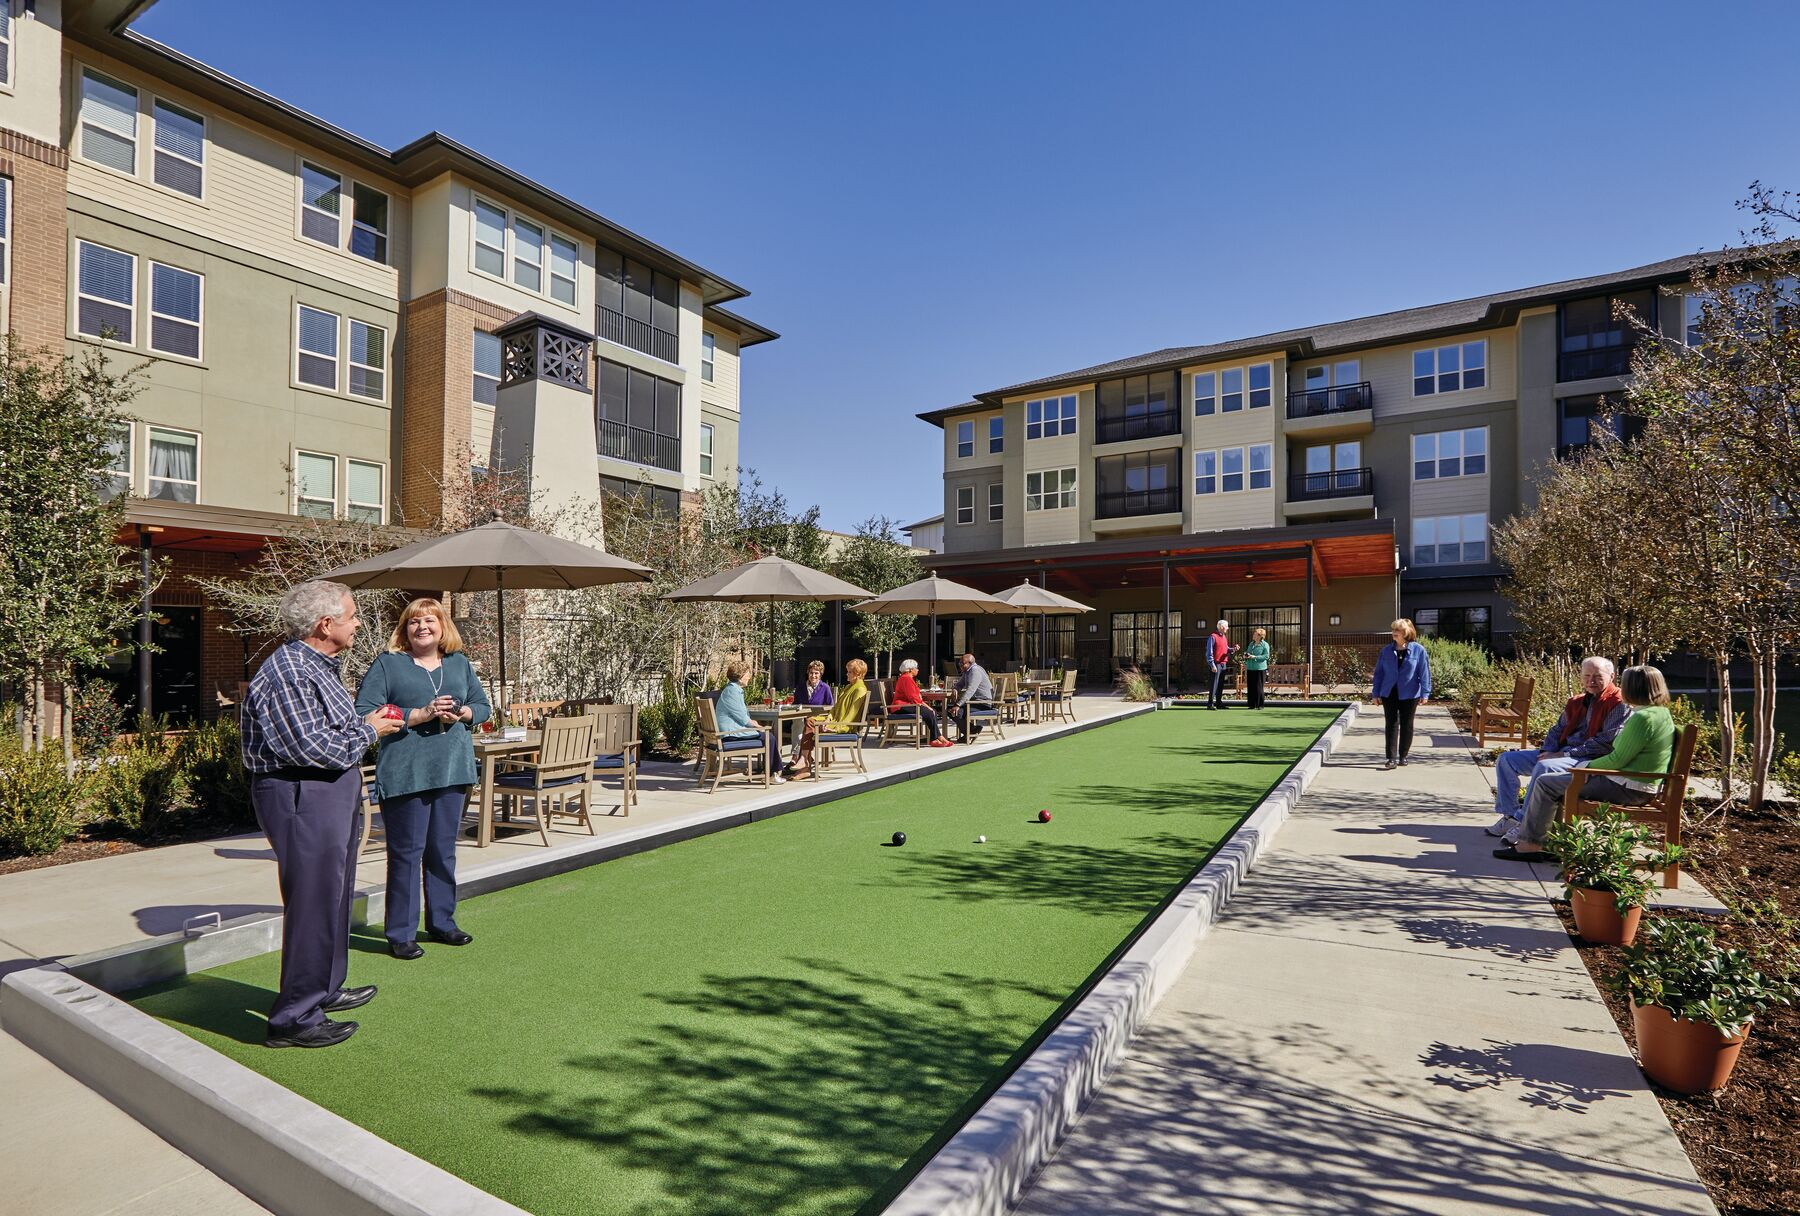 Residents of Highland Springs enjoy dozens of opportunities to socialize and connect...like bocce.